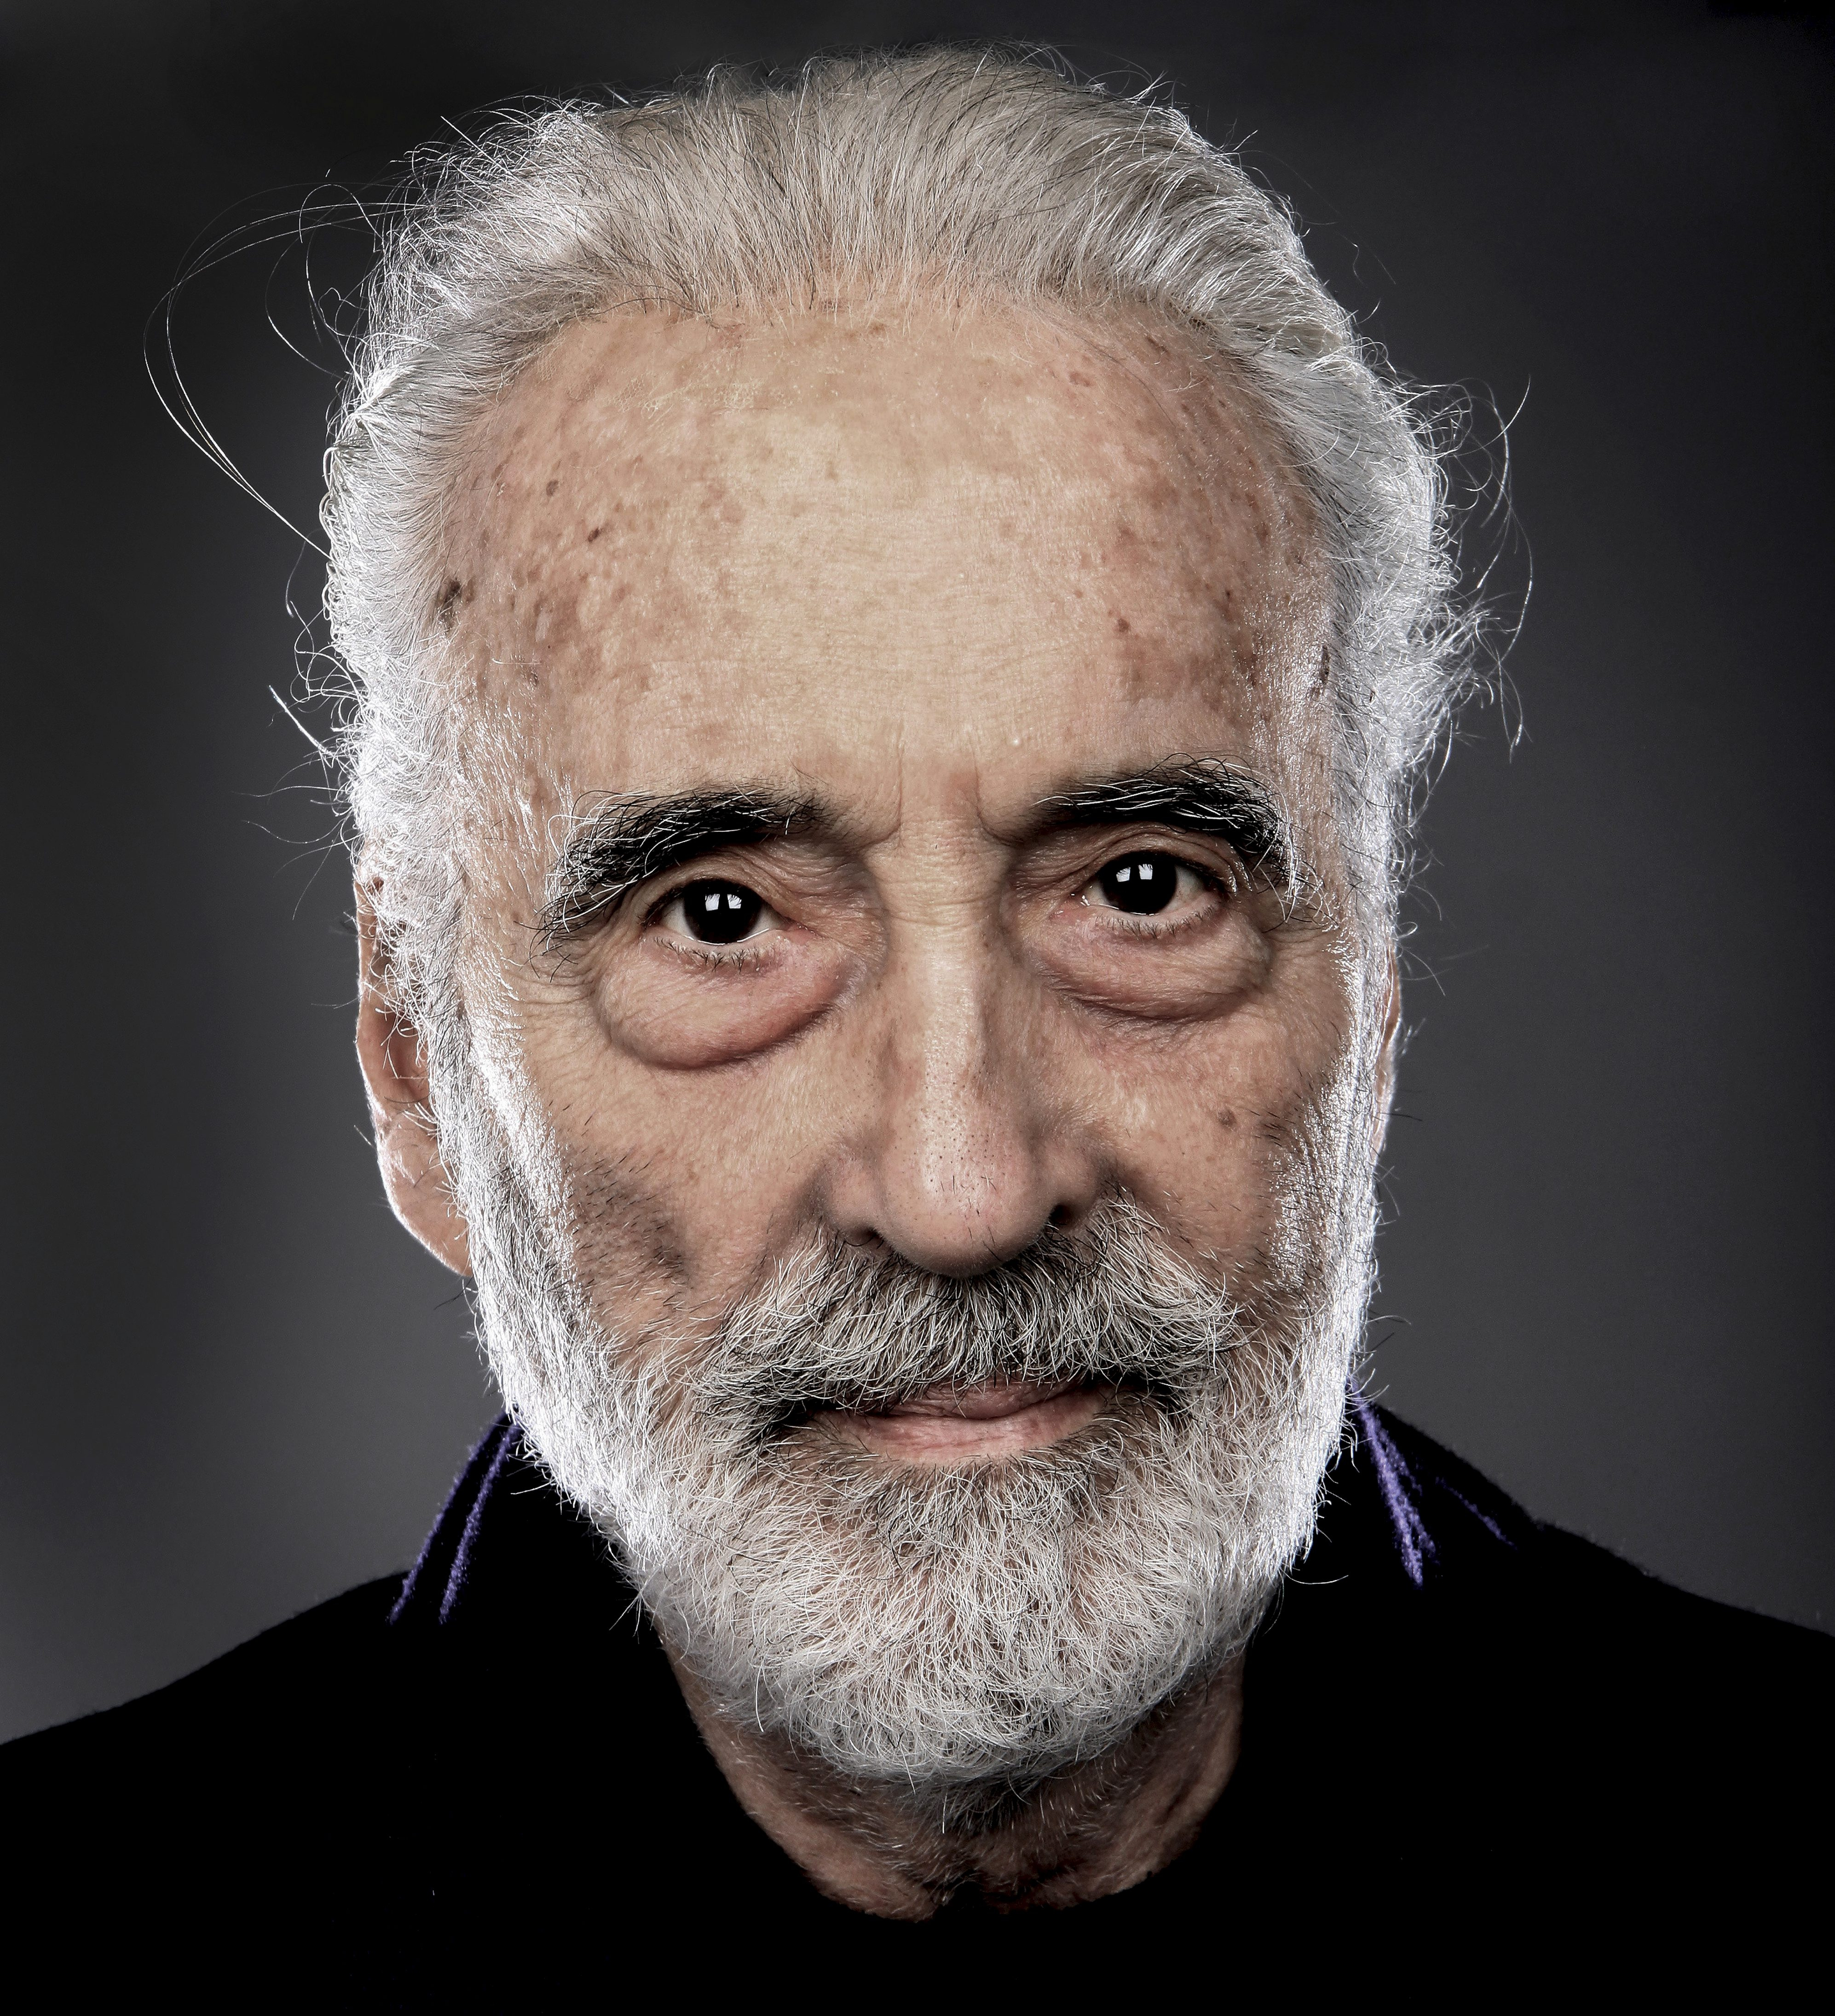 Christopher Lee, portrait, backstage at the Golden Gods  Awards at the O2 in London on June 15th 2014. (Photo by Mick Hutson/Redferns)